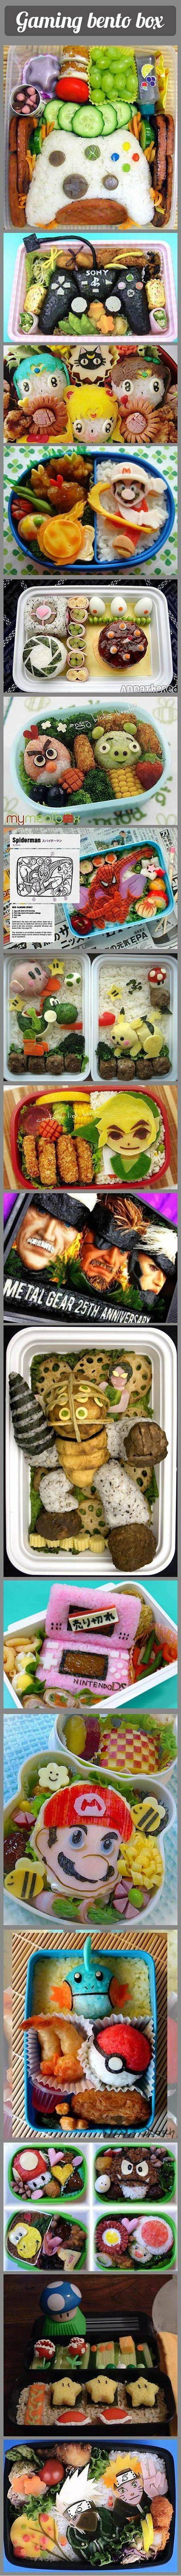 Here are some cool bento boxes that geeky gamers would love.